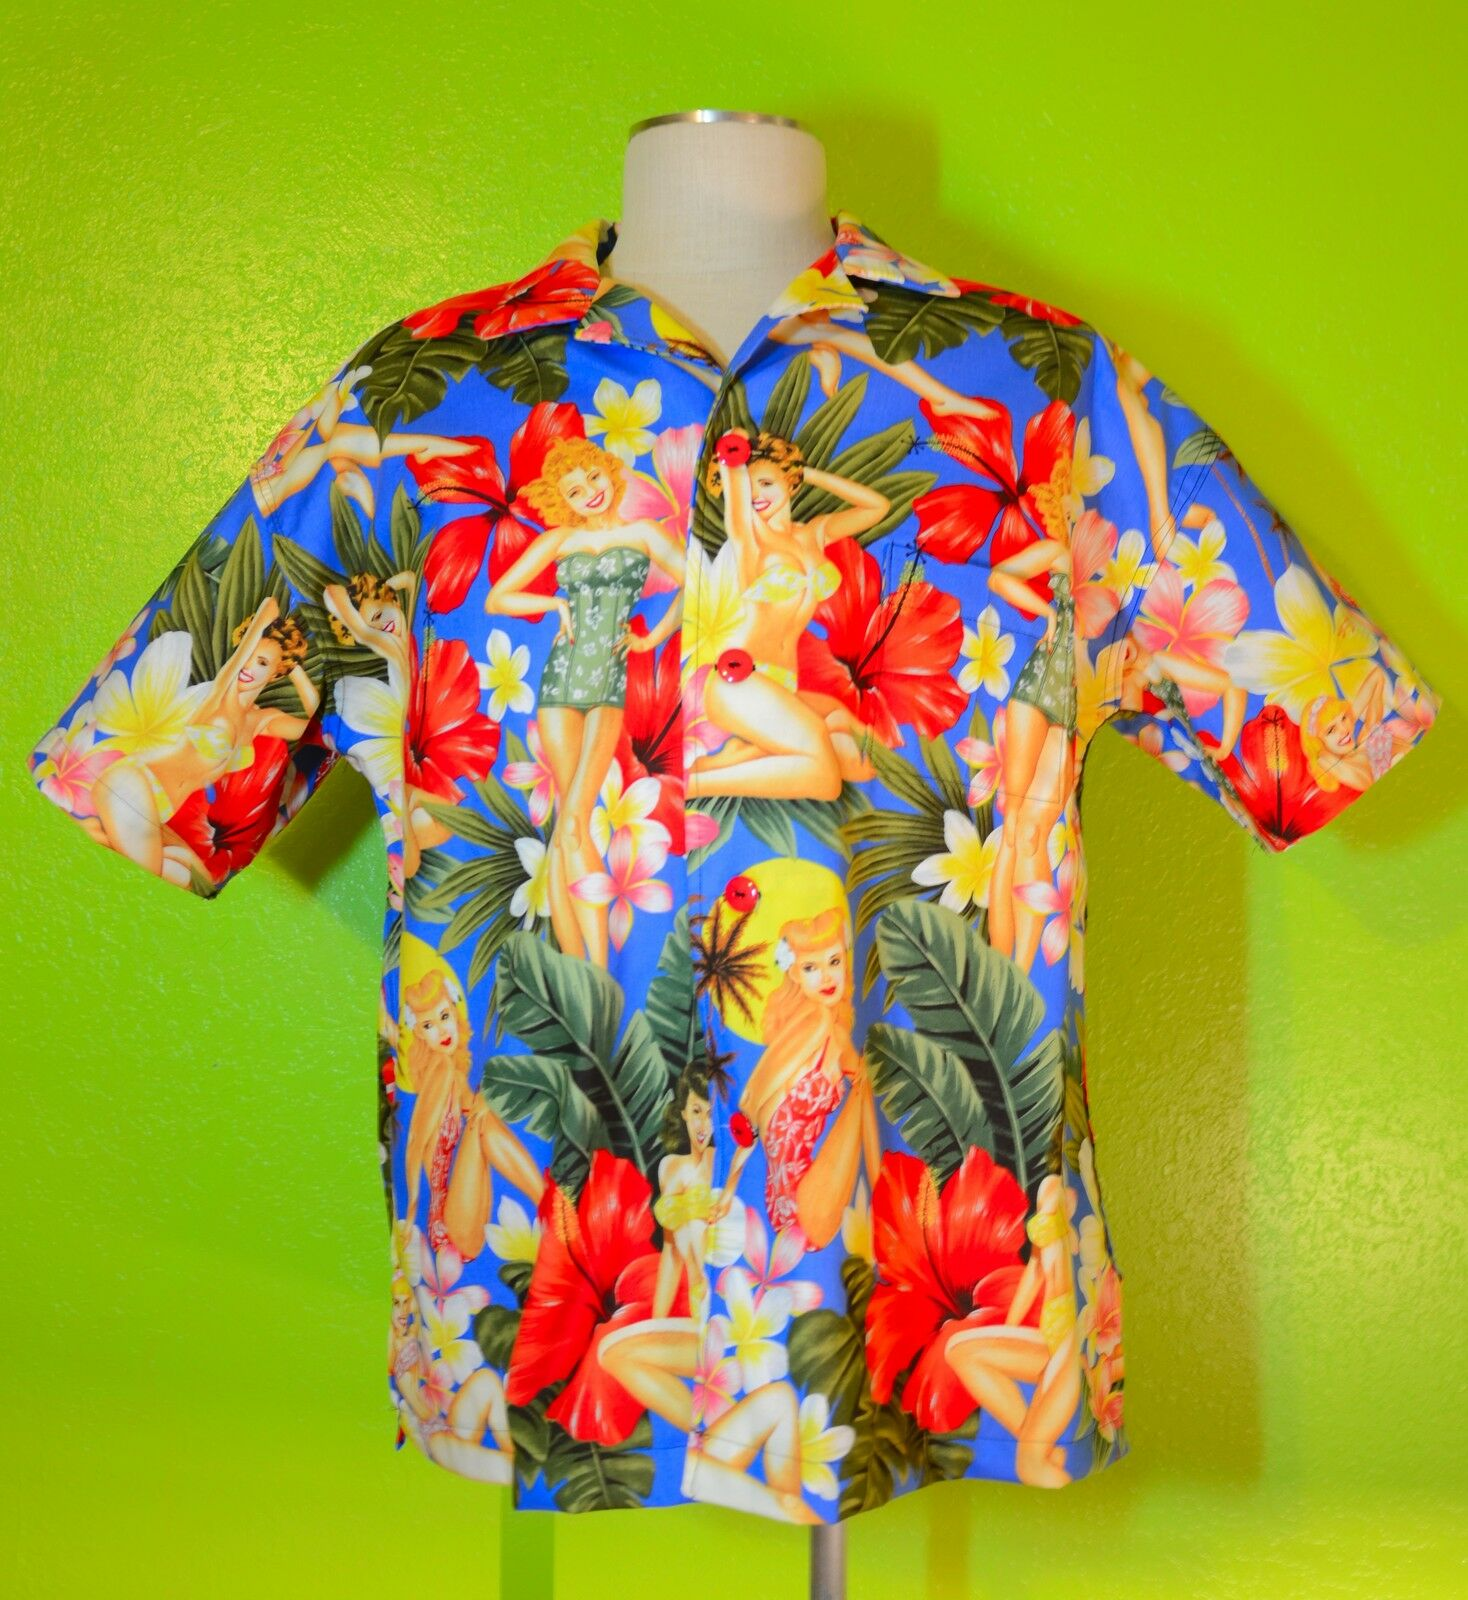 Island Girls  SOMETHING FISHY Handmade Shirt, 2XL, Hawaiian, Tropical, Cotton